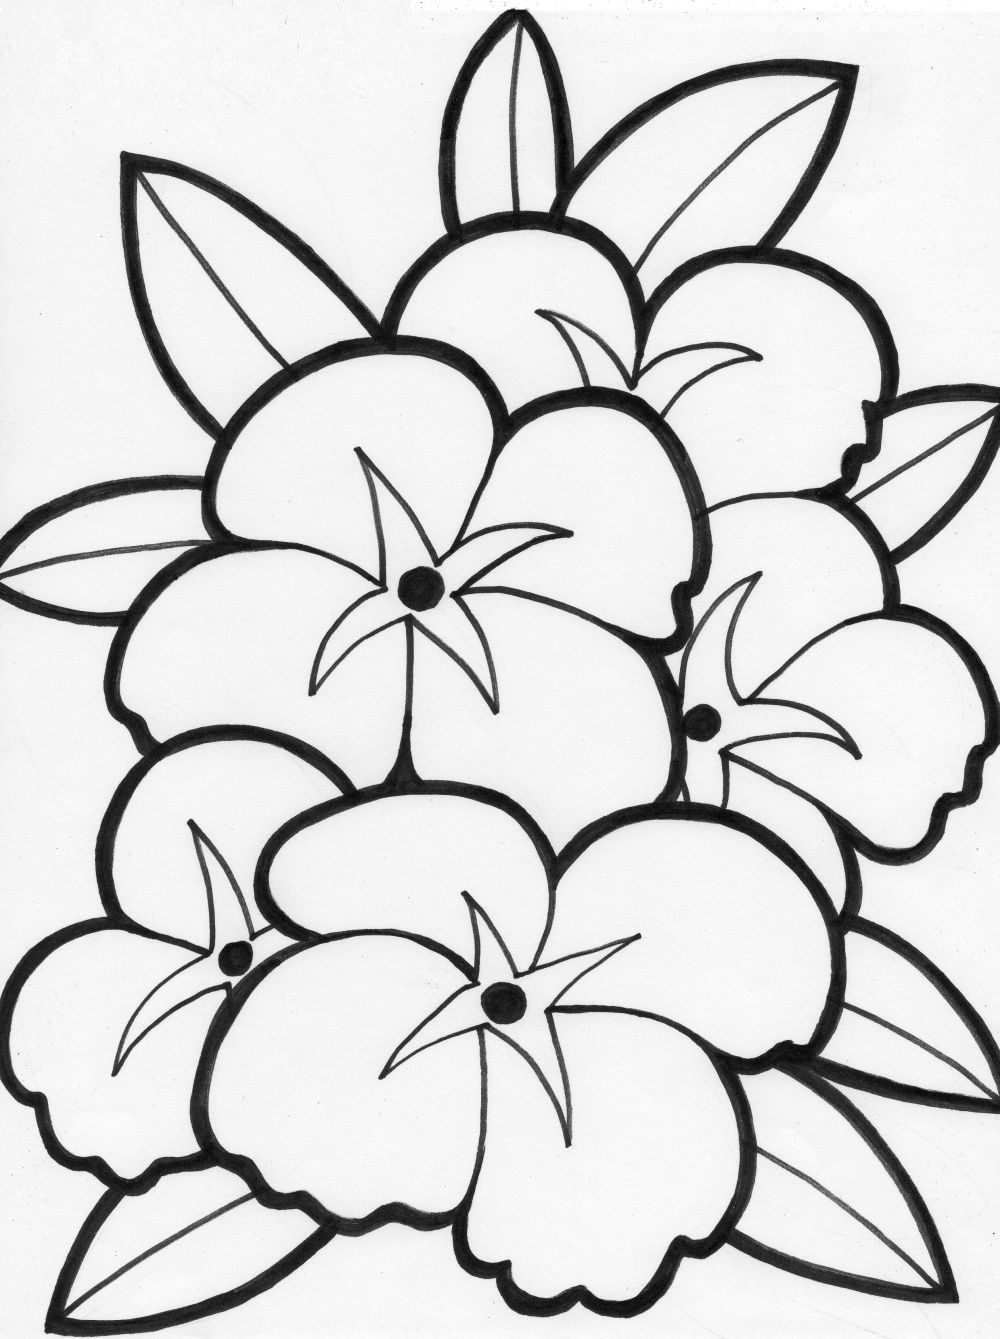 Coloring Pages Free Printable Flowers at GetDrawings.com ...